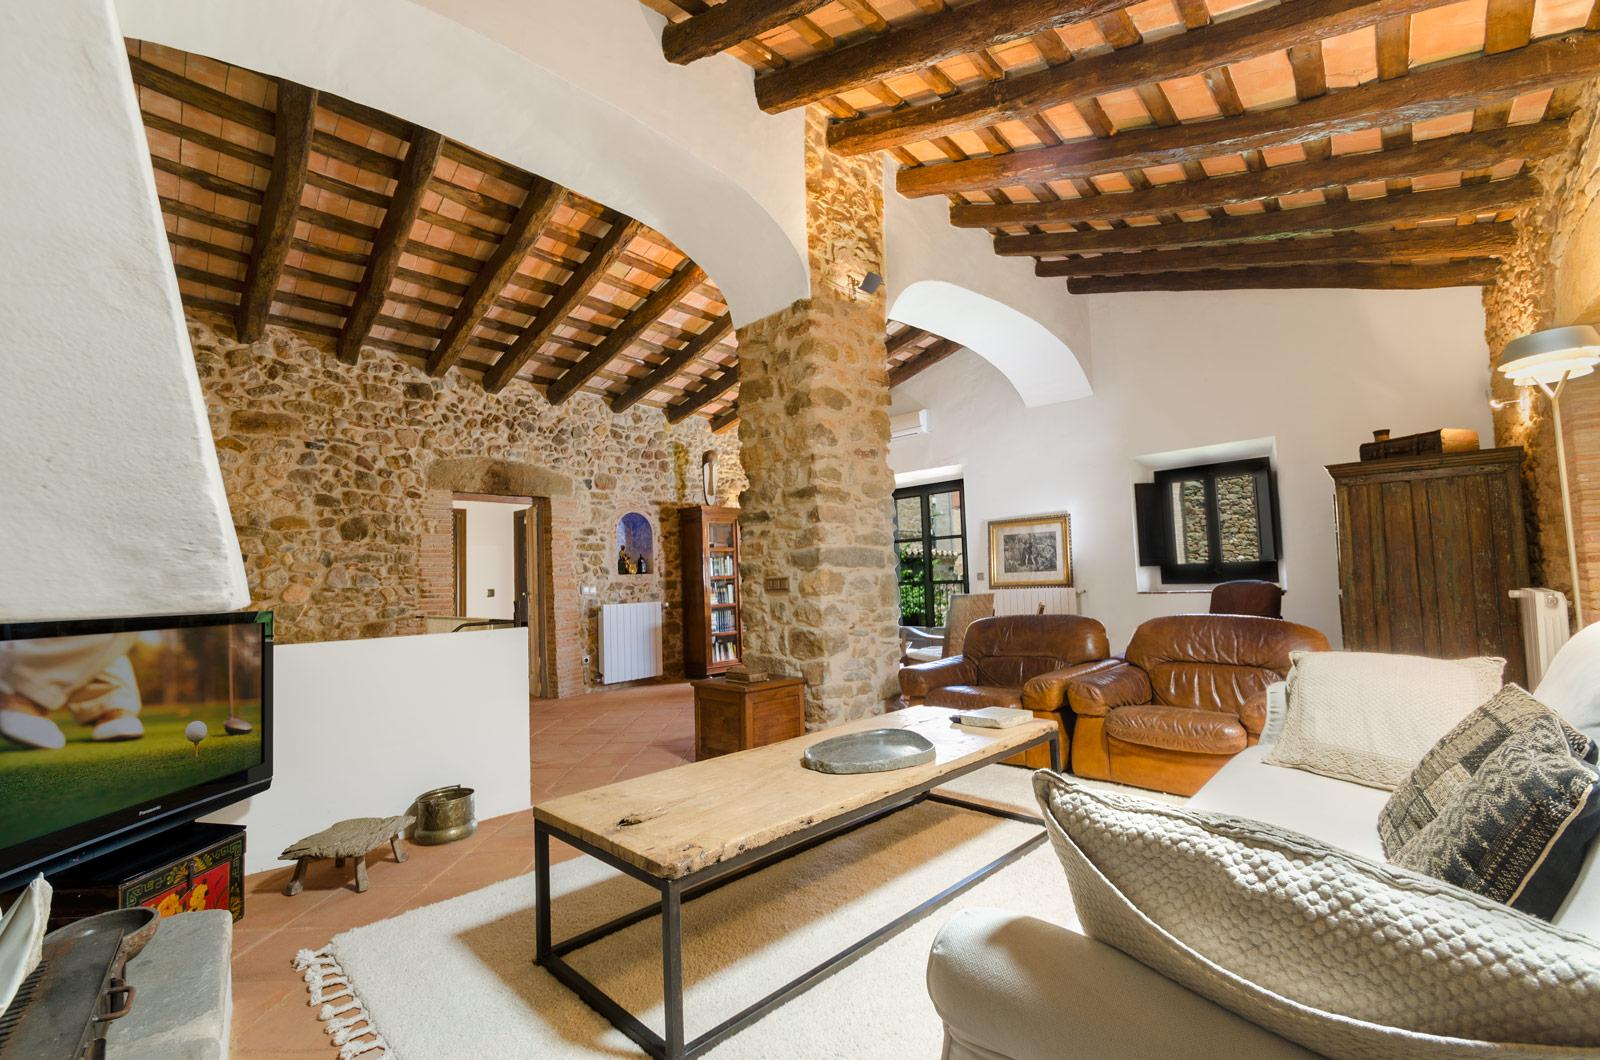 9. Villa for sale in Girona - Traditional Masia, Catalonia country house, for sale in Girona